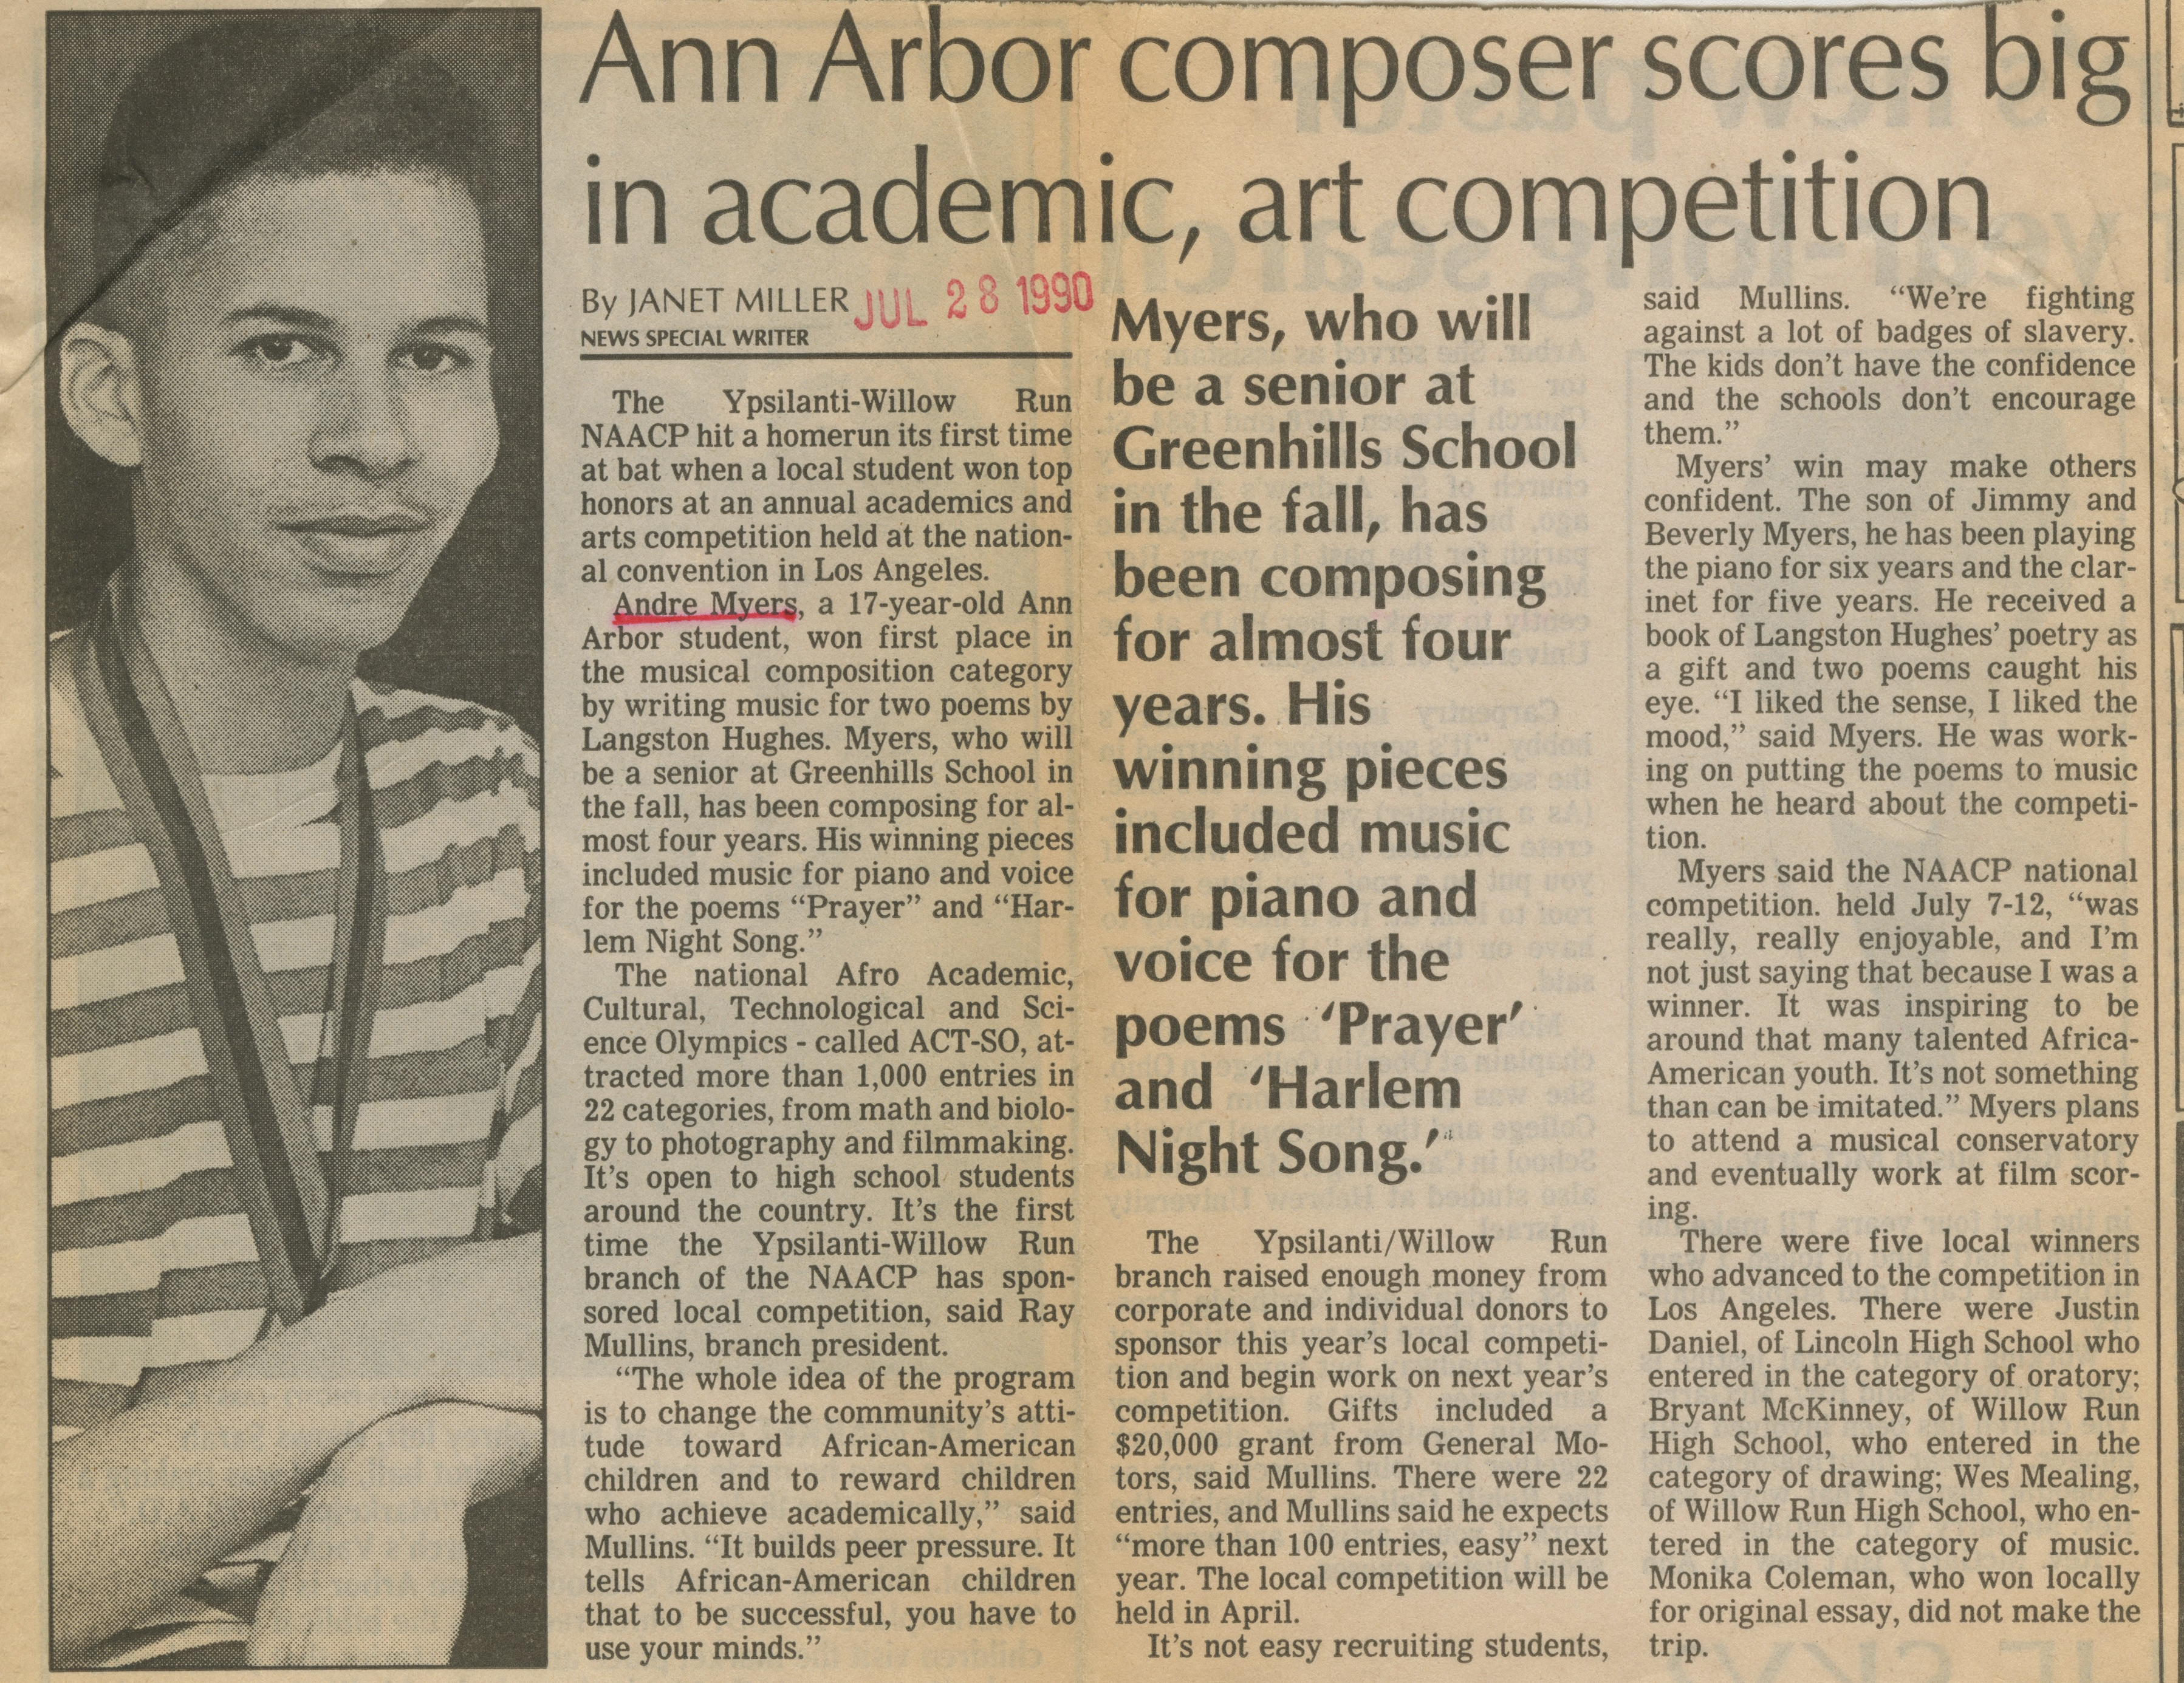 Ann Arbor Composer Scores Big In Academic, Art Competition image